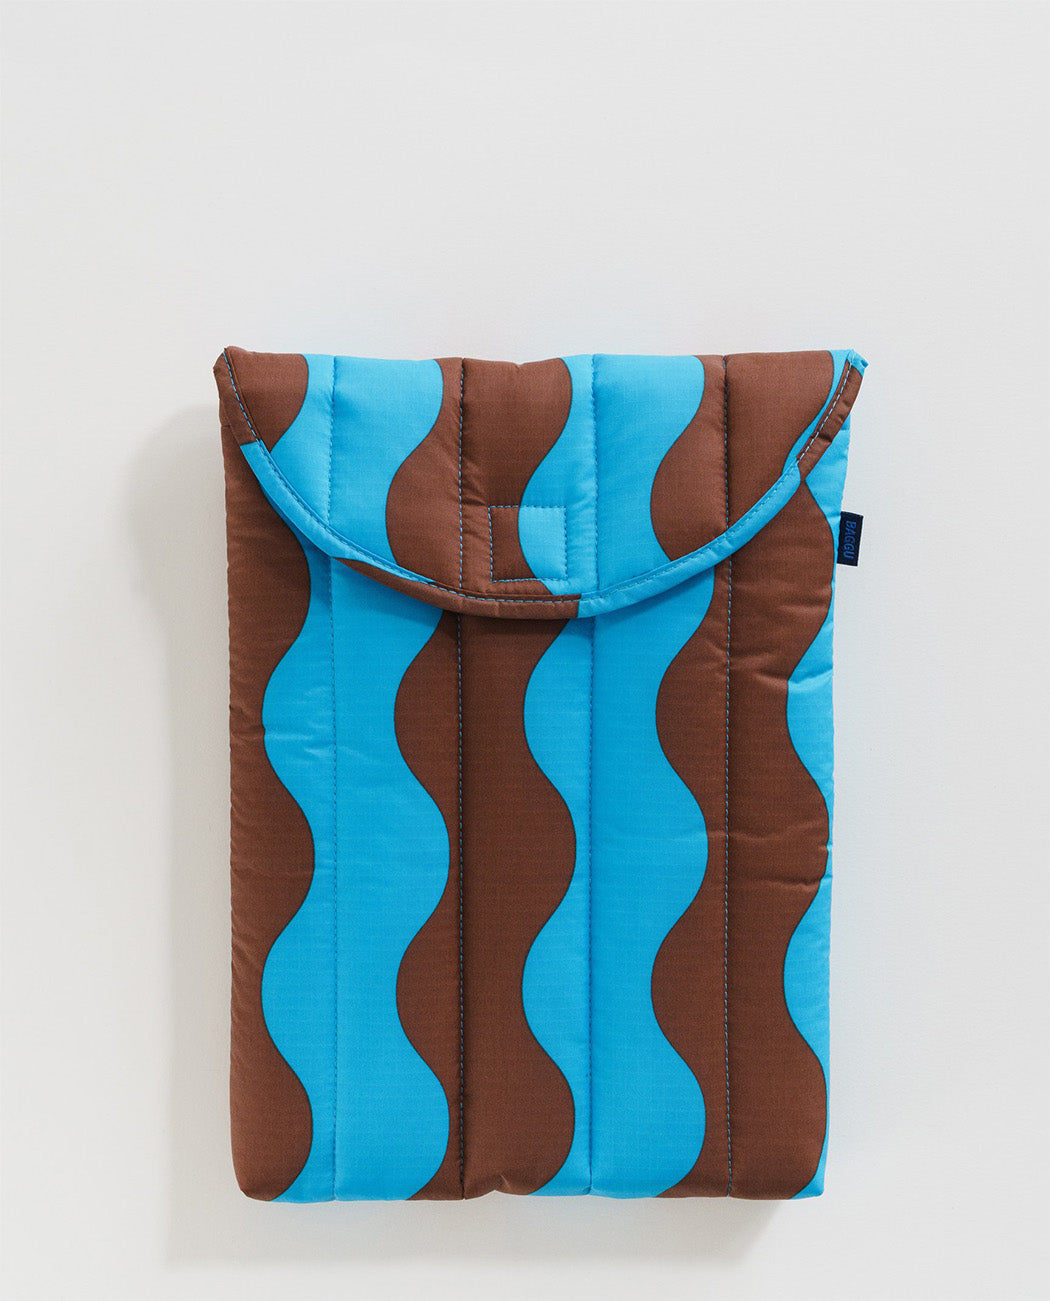 Baggu Puffy Laptop Sleeve 13 inch Teal Brown Wavy Stripe Nederland Utrecht